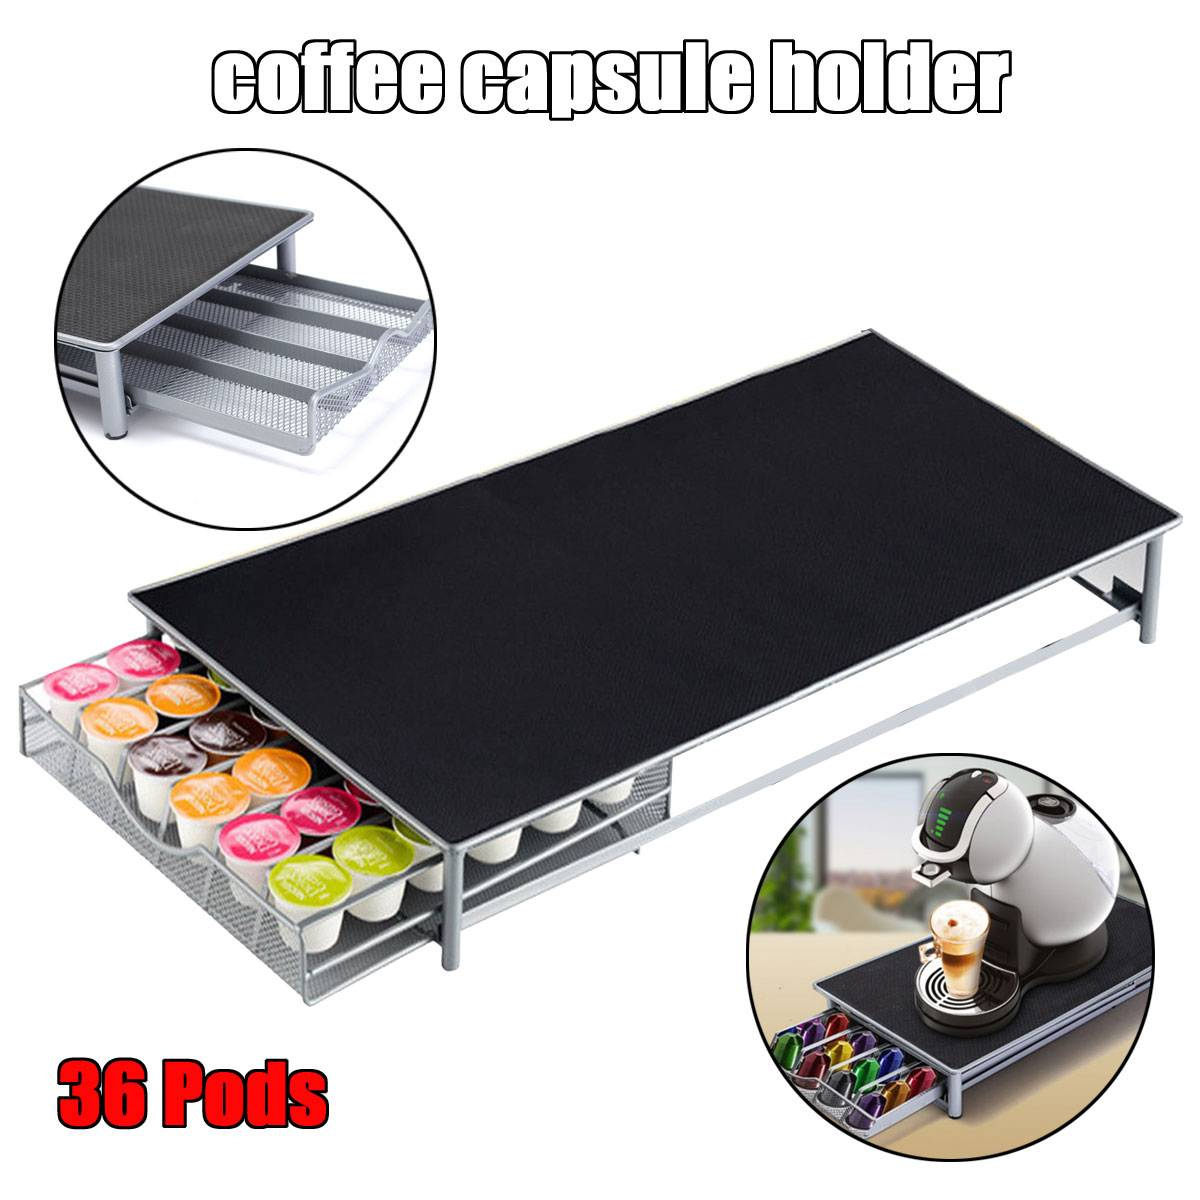 Stainless Steel 36 Cups Nespresso Coffee Capsules Pods Holder Storage Stand Rack Drawers Coffee Capsules Shelves Organization